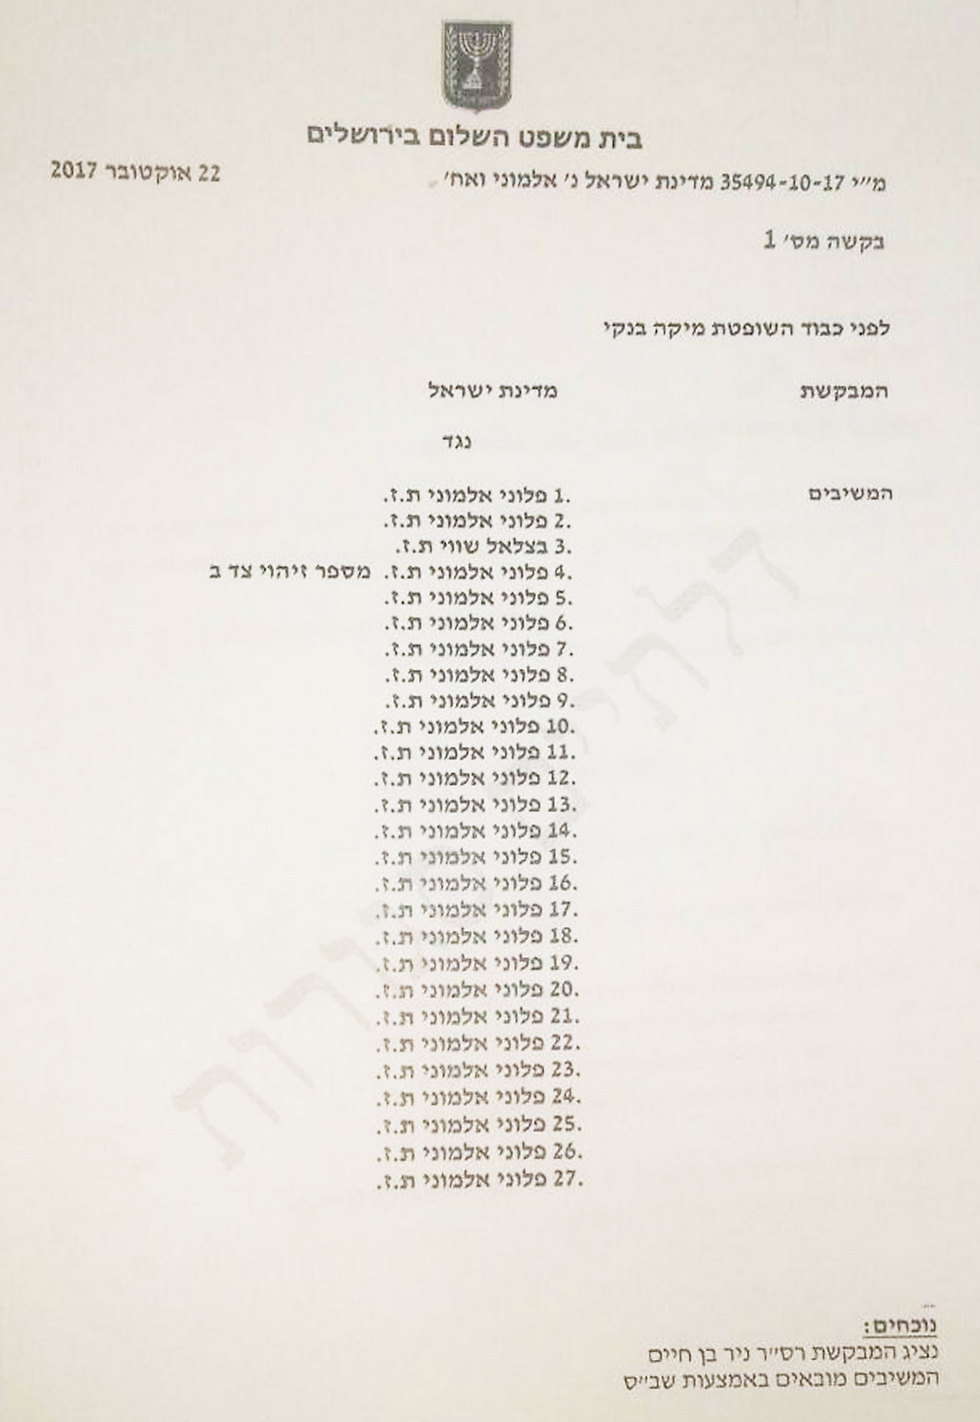 The Jerusalem Magistrates' Court showing the defendants marked by serial numbers